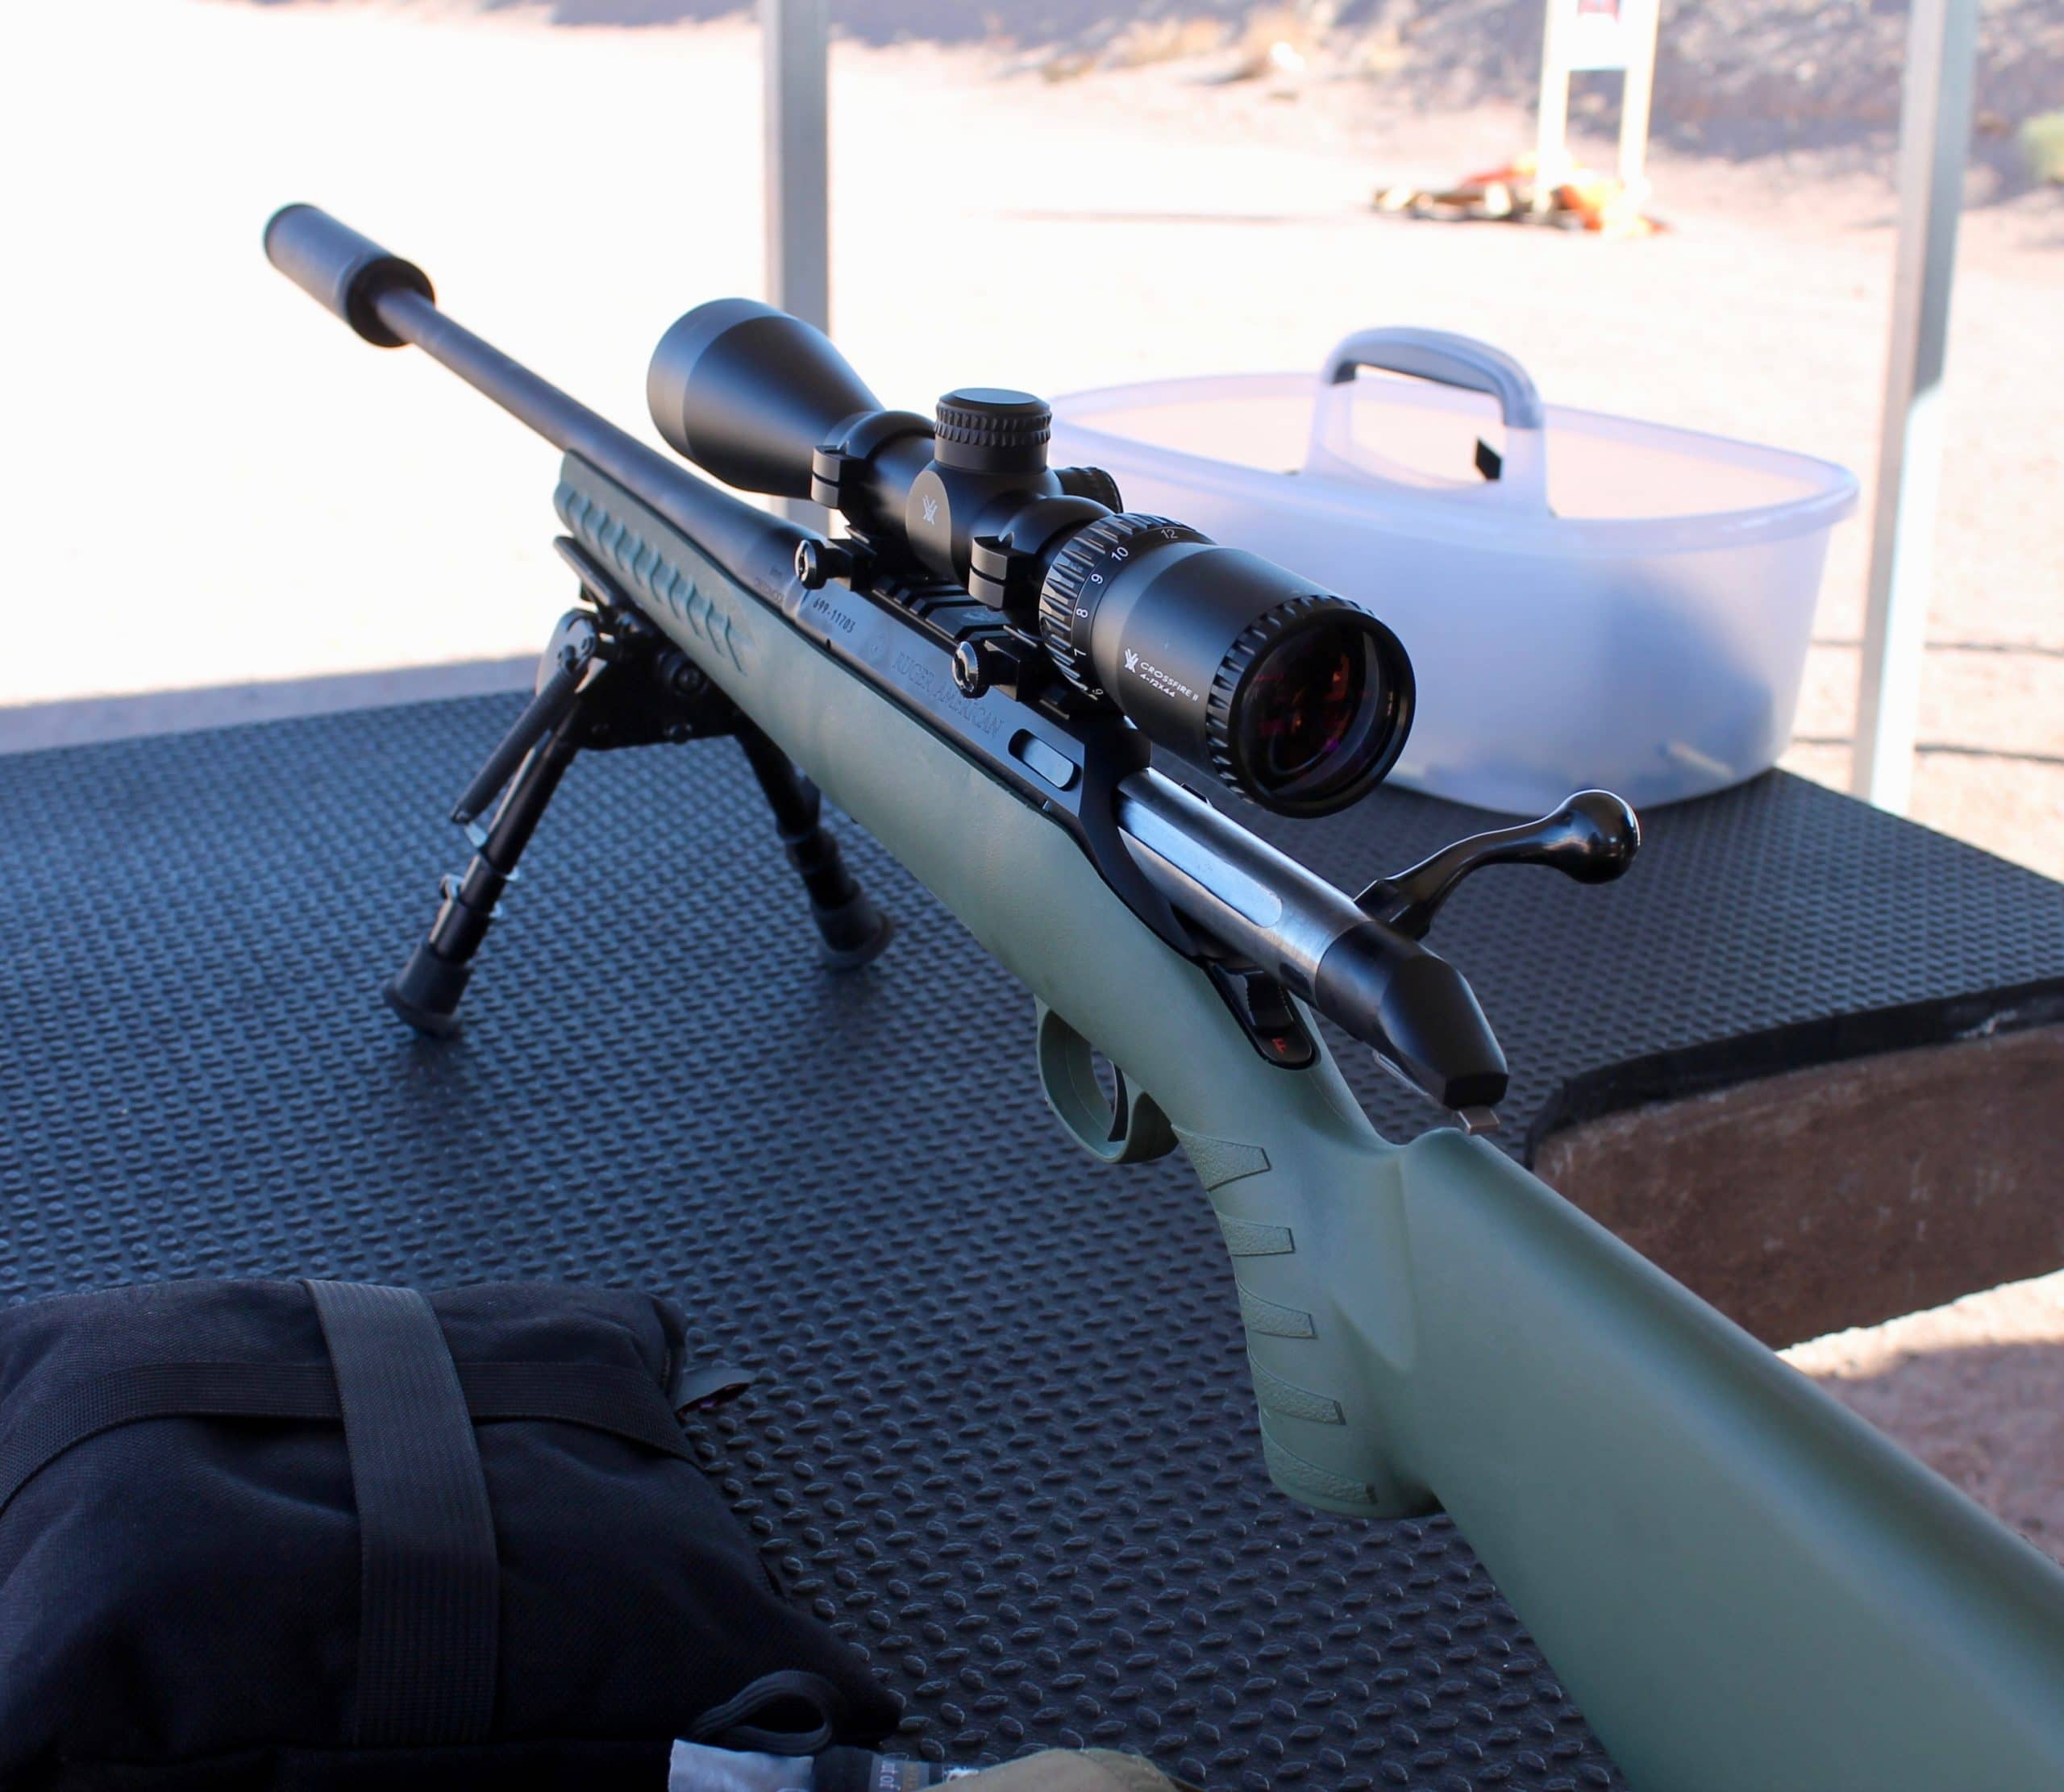 Ruger American Predator – How Does It Compare To Other Ruger American Rifles?